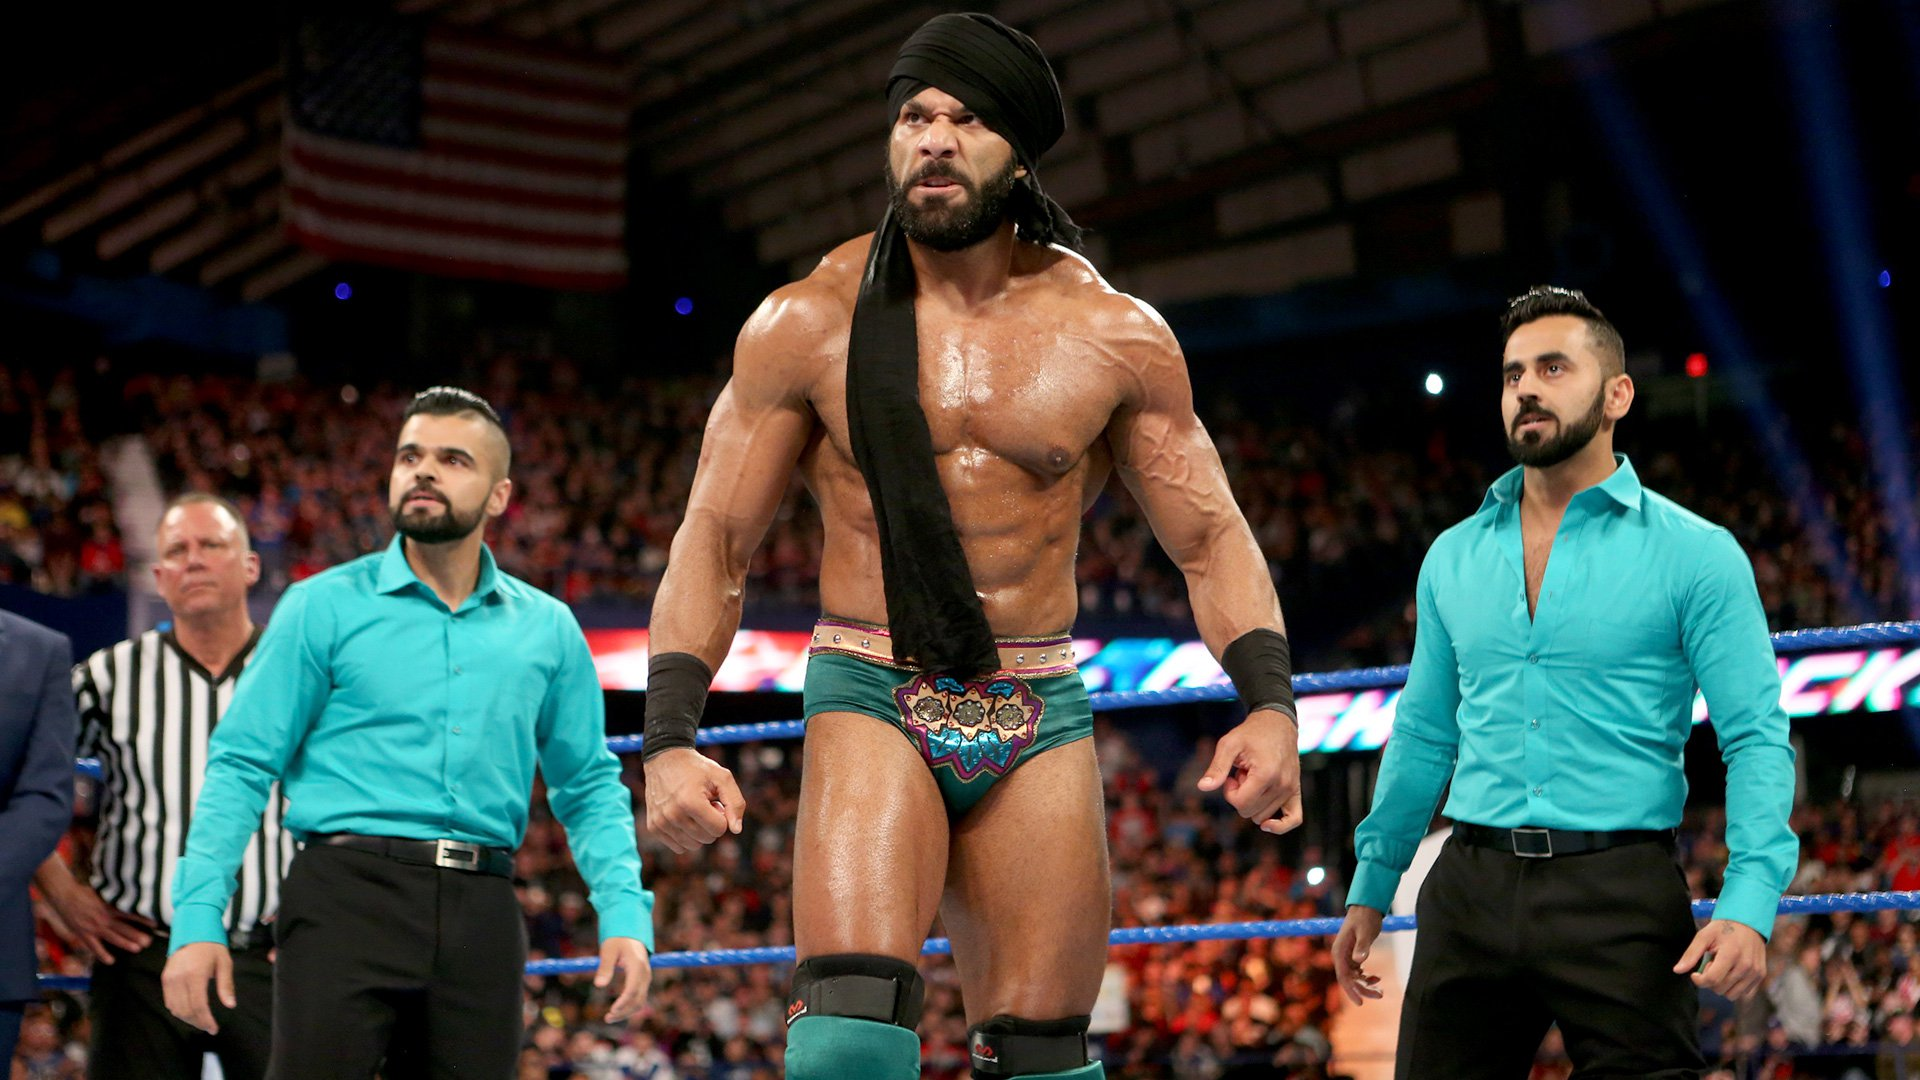 With The Singh Brothers as his side, Jinder Mahal awaits his challenge at WWE Backlash.